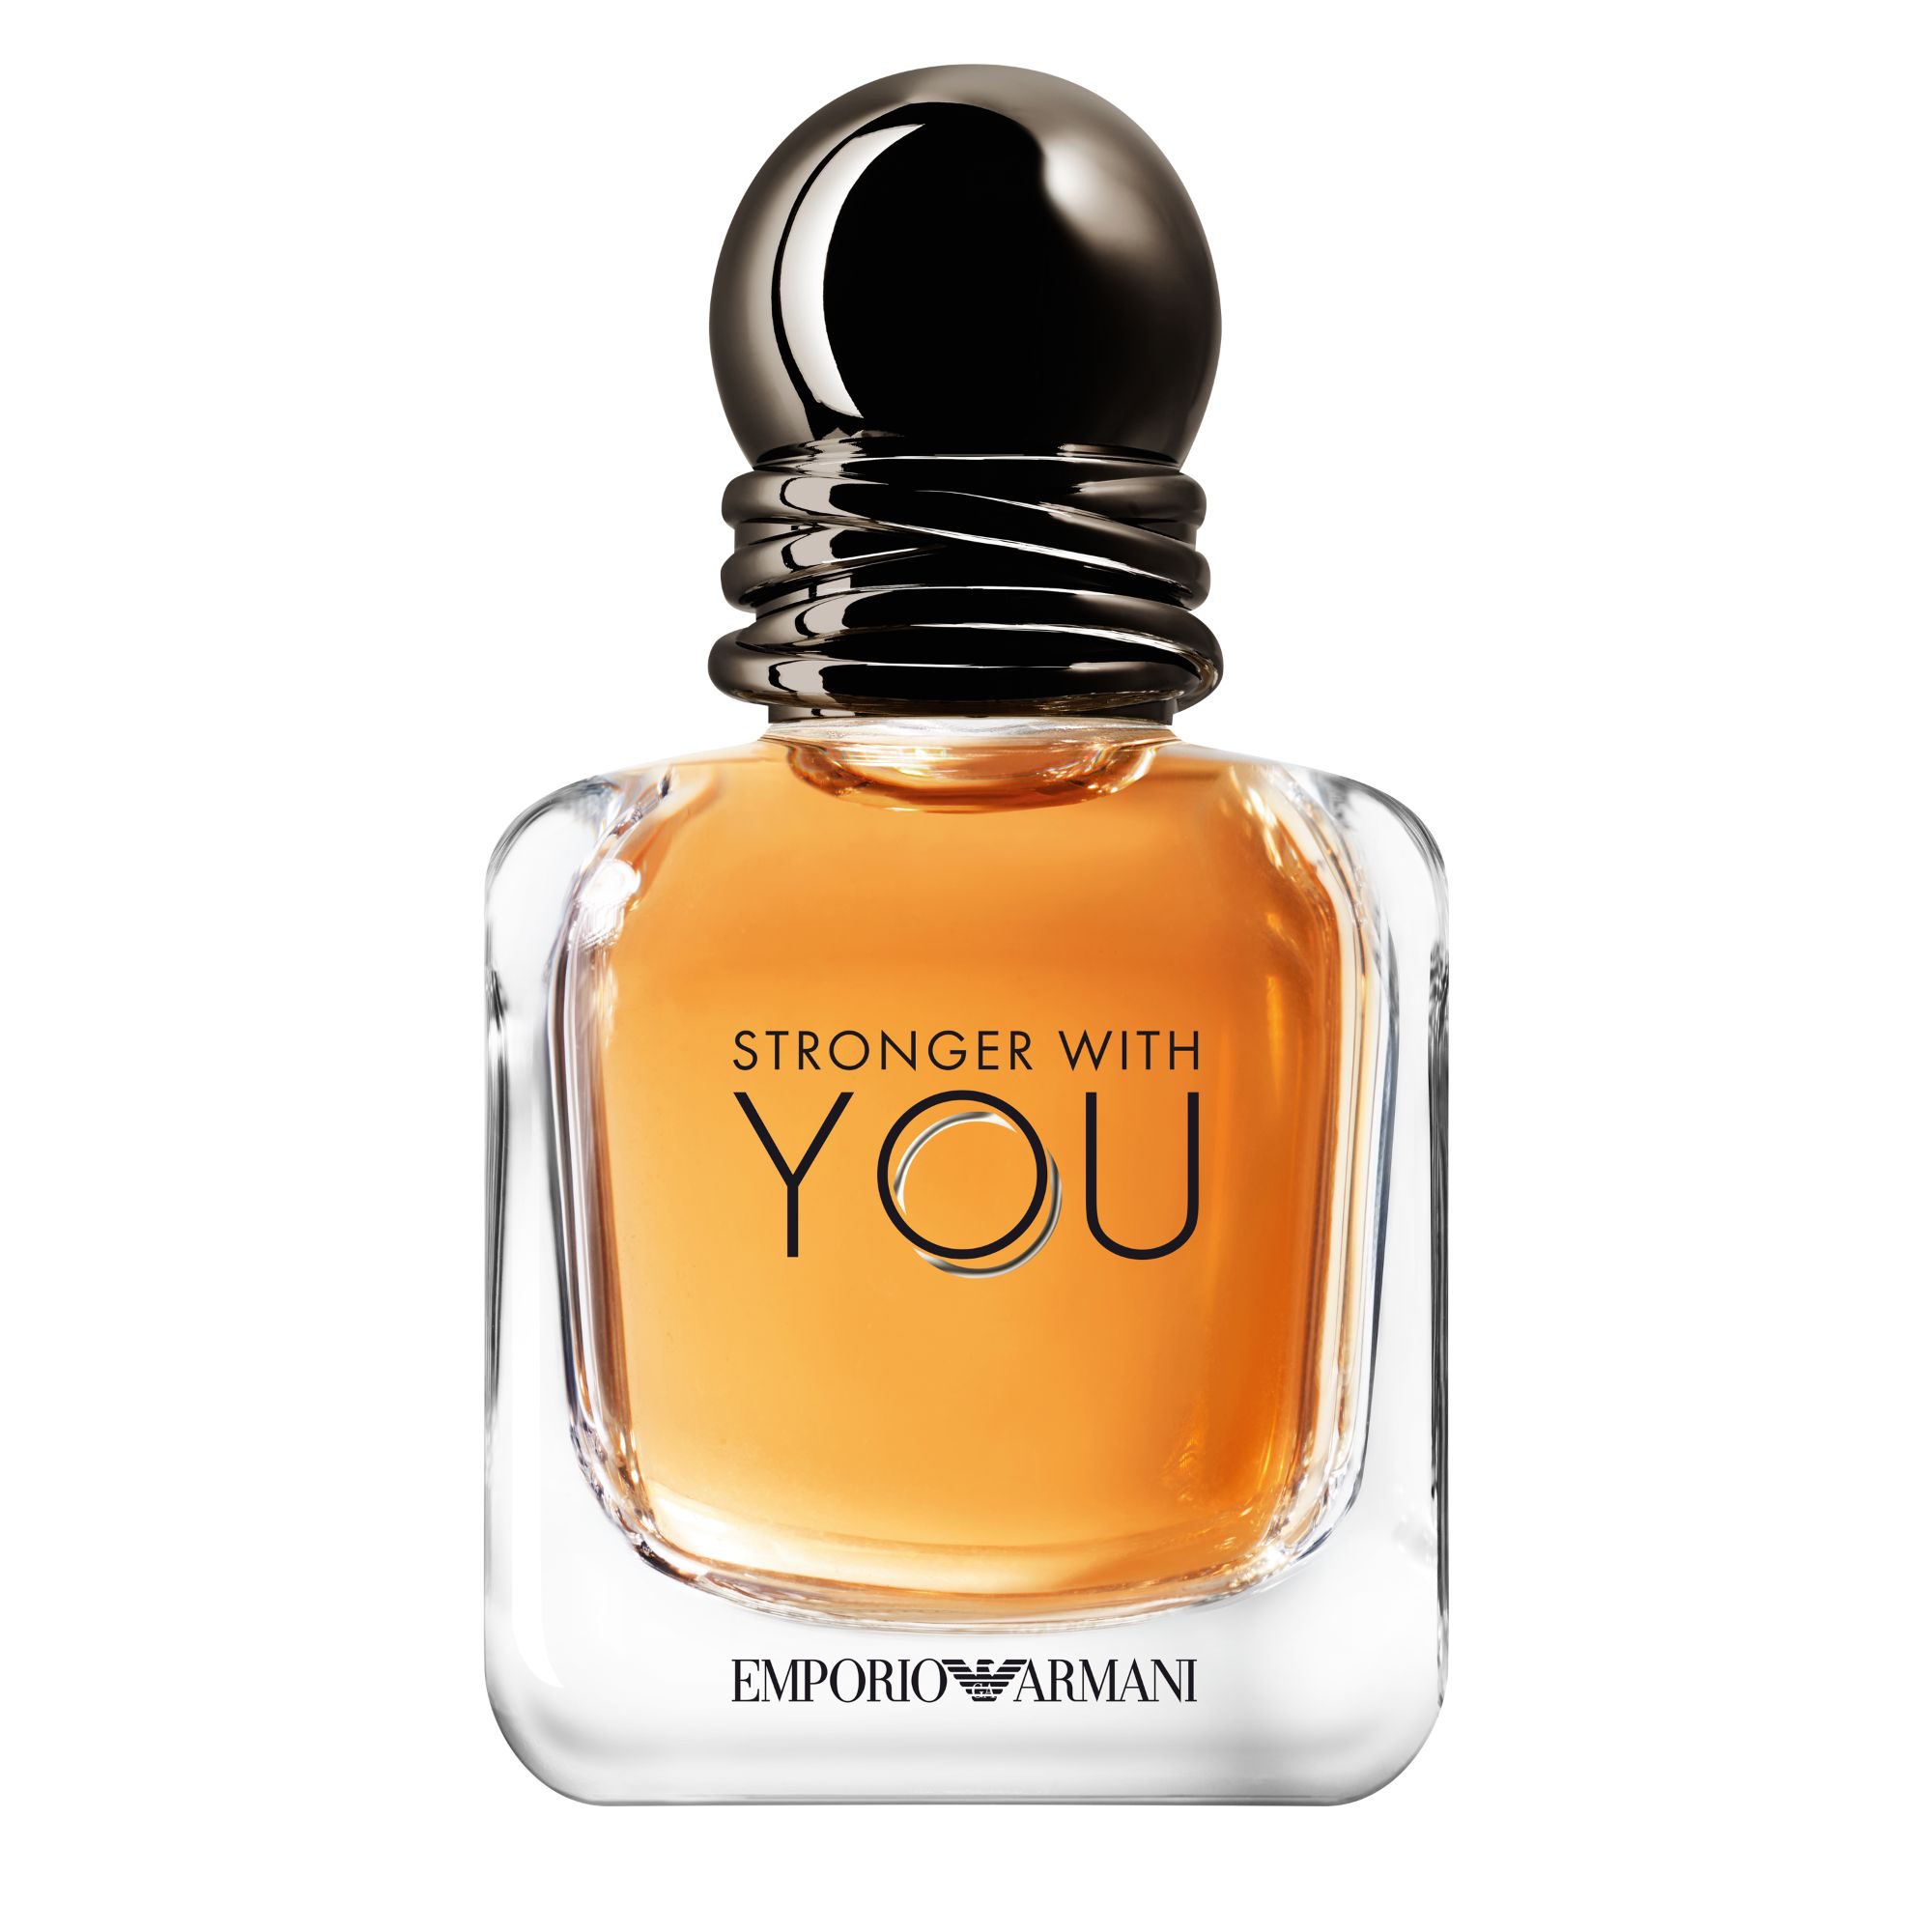 Giorgio Armani Stronger With You Homme EDT, 30 ml